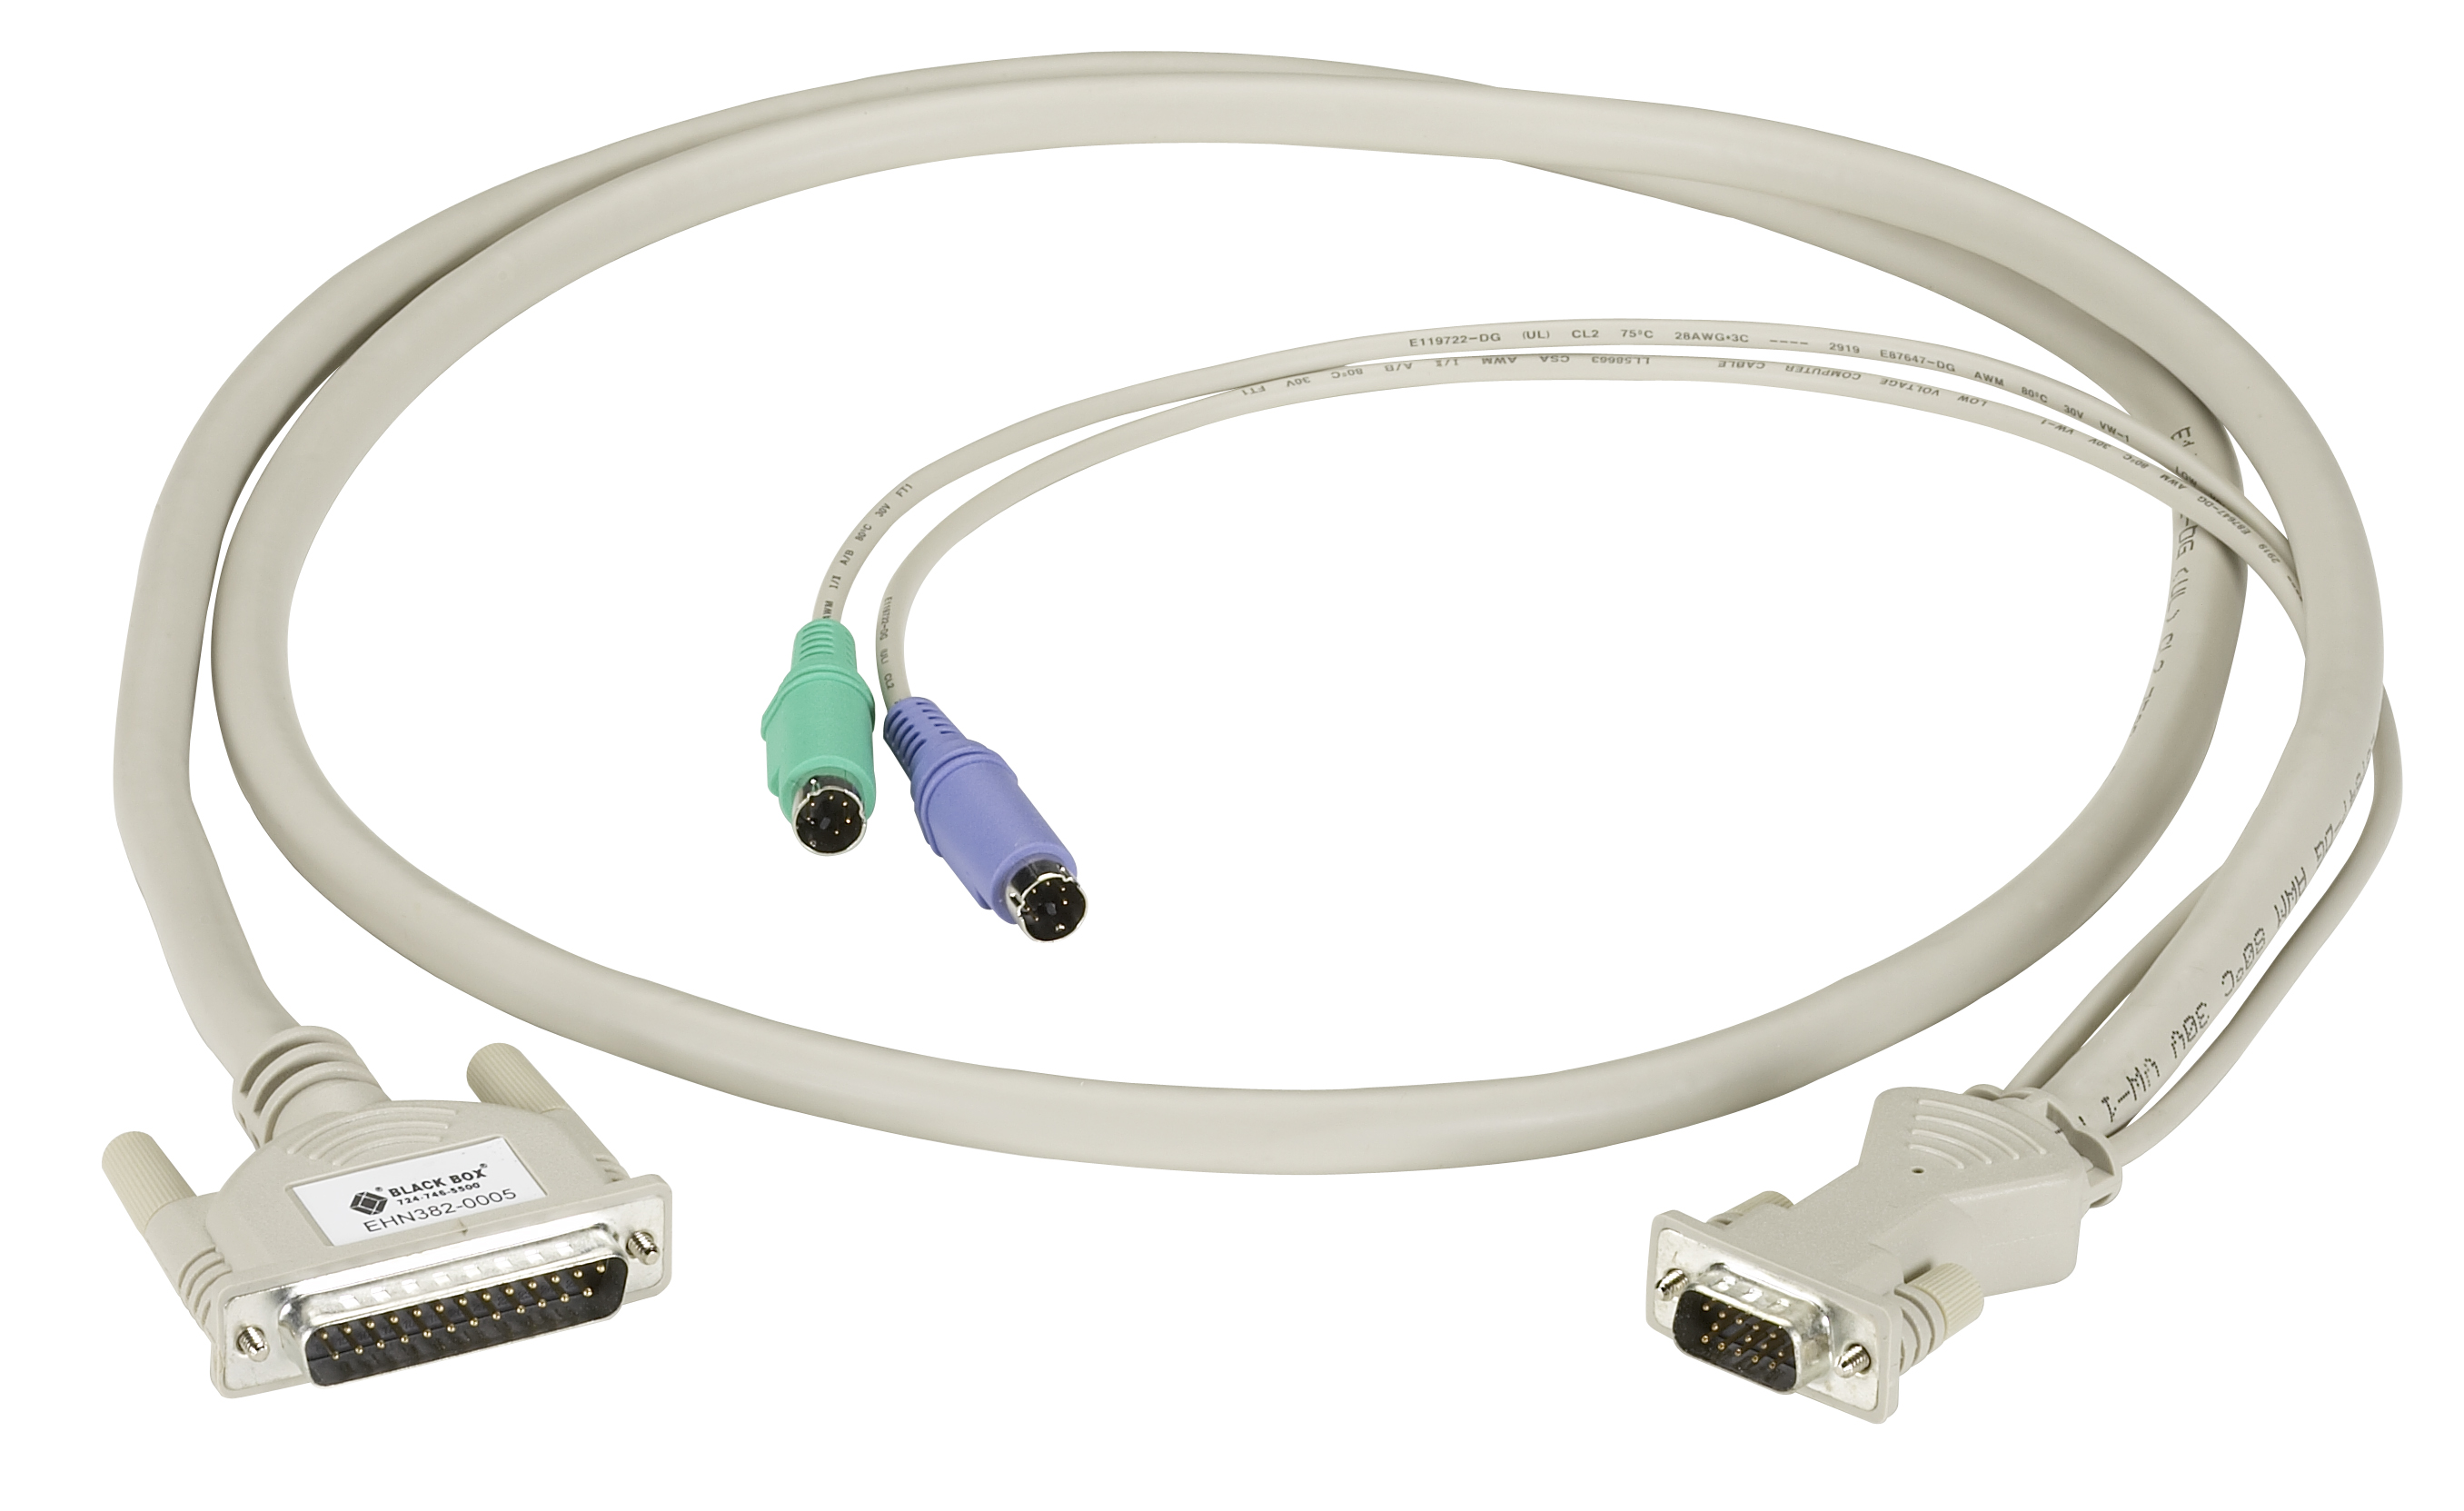 KVM CPU/Server Cable with Audio, PC, PS/2 Coax, 5-ft. (1.5-m)